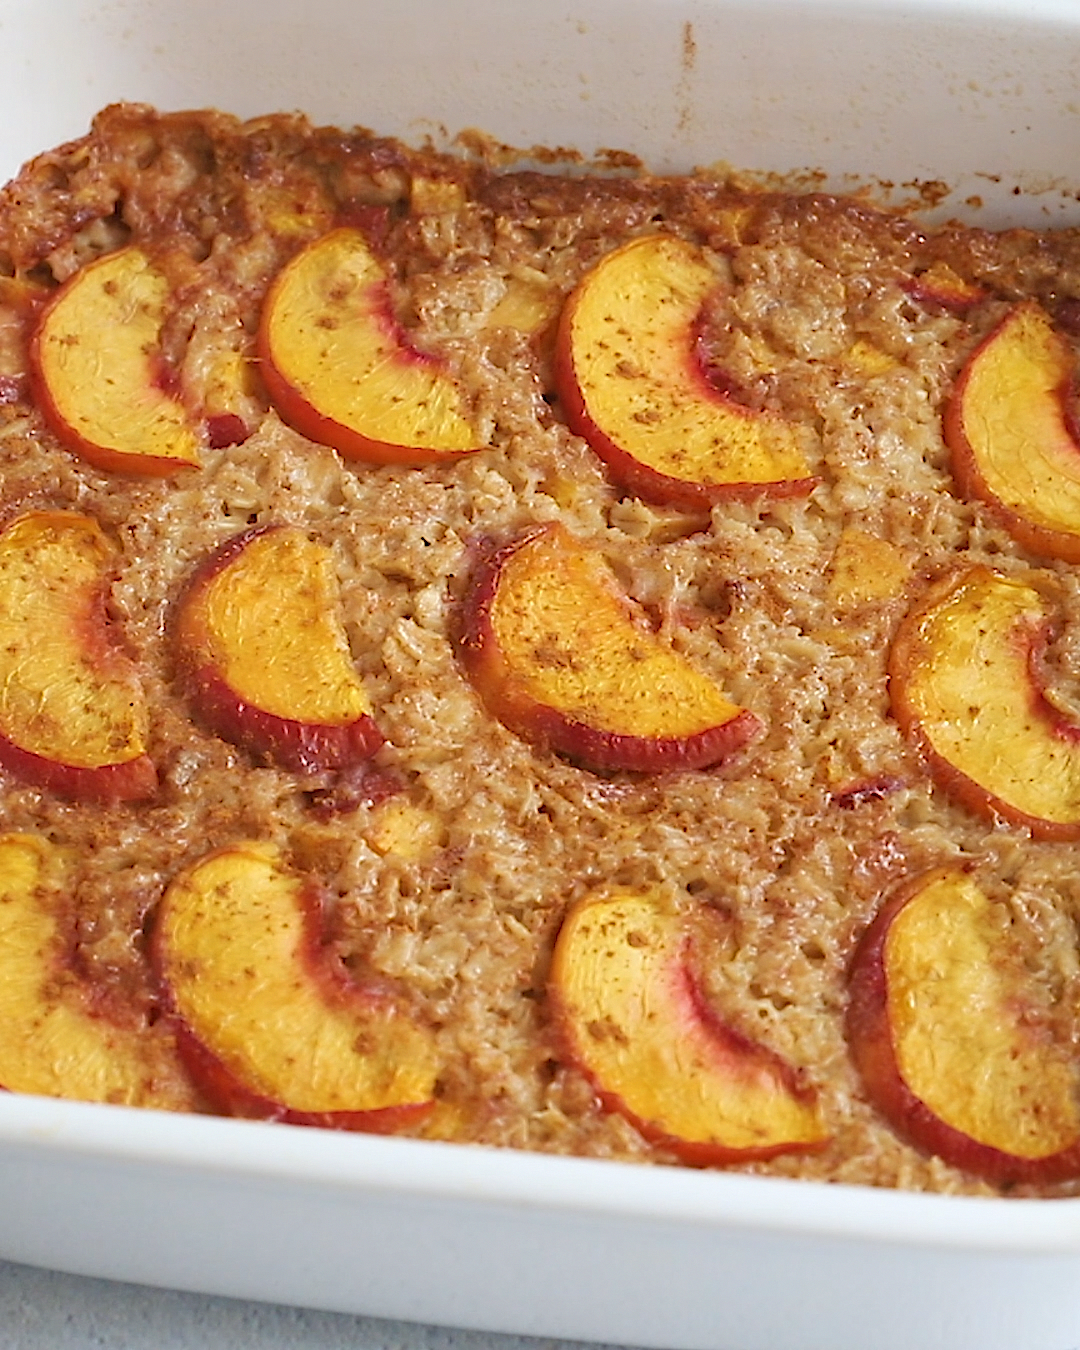 A healthy baked oatmeal recipe using one of my favorite summer fruits: peaches! Make ahead for meal prep or a weekend brunch.